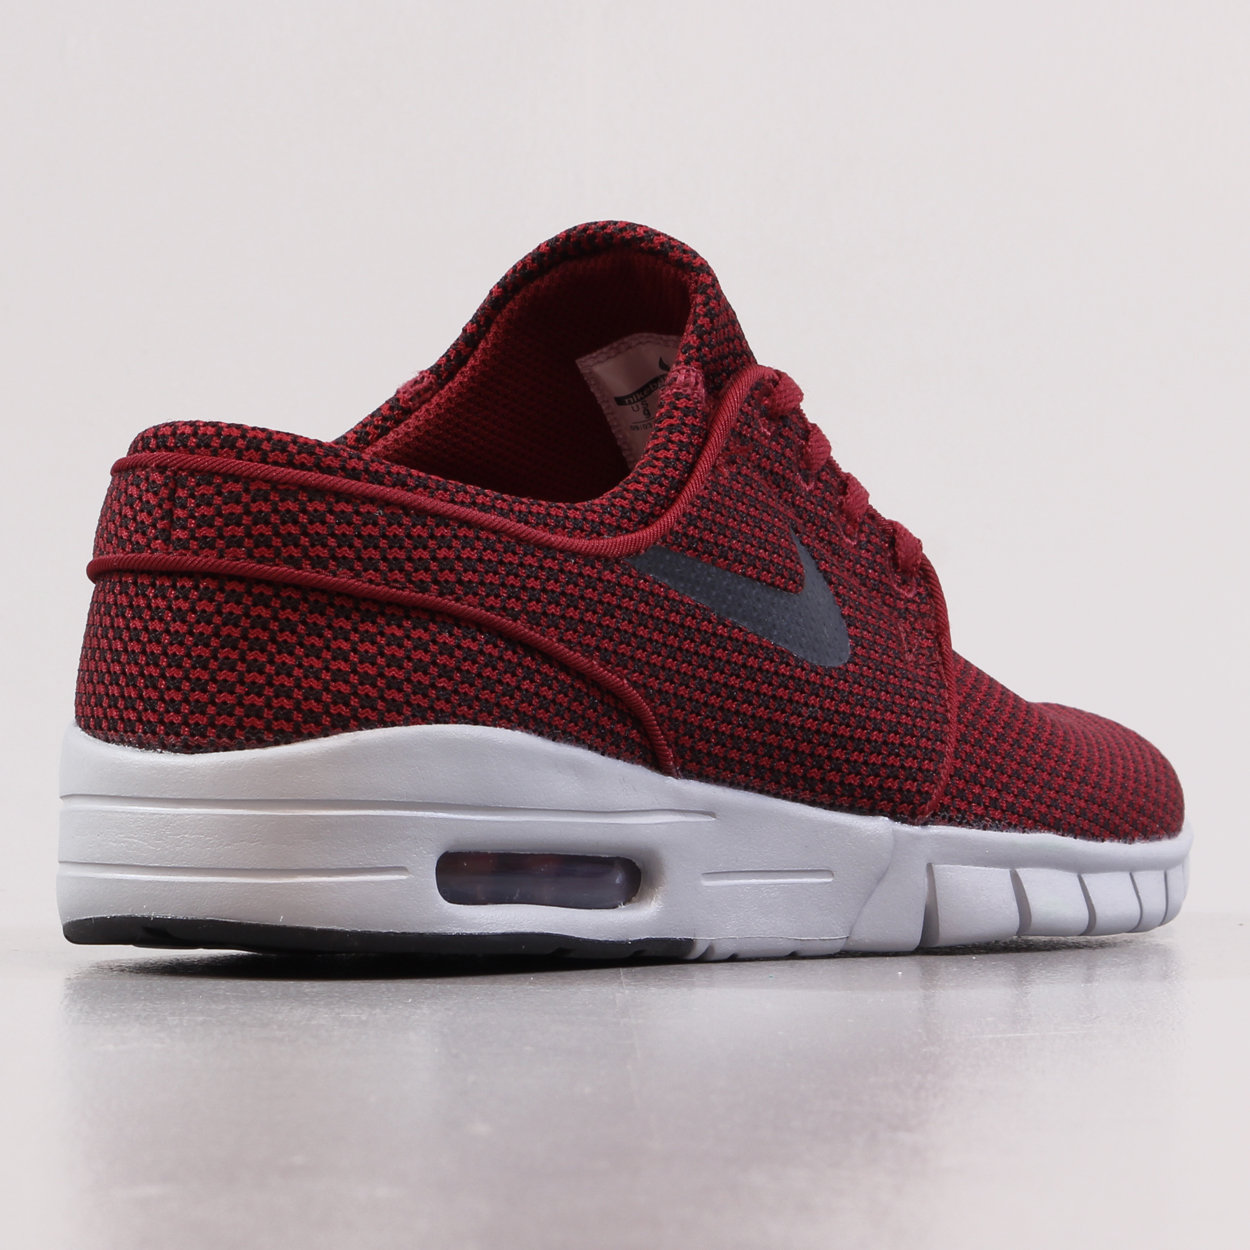 the best attitude 42007 3d777 Stefan Janoski Max trainers in red and black with mesh uppers, lightweight  and stylish. Nike SB